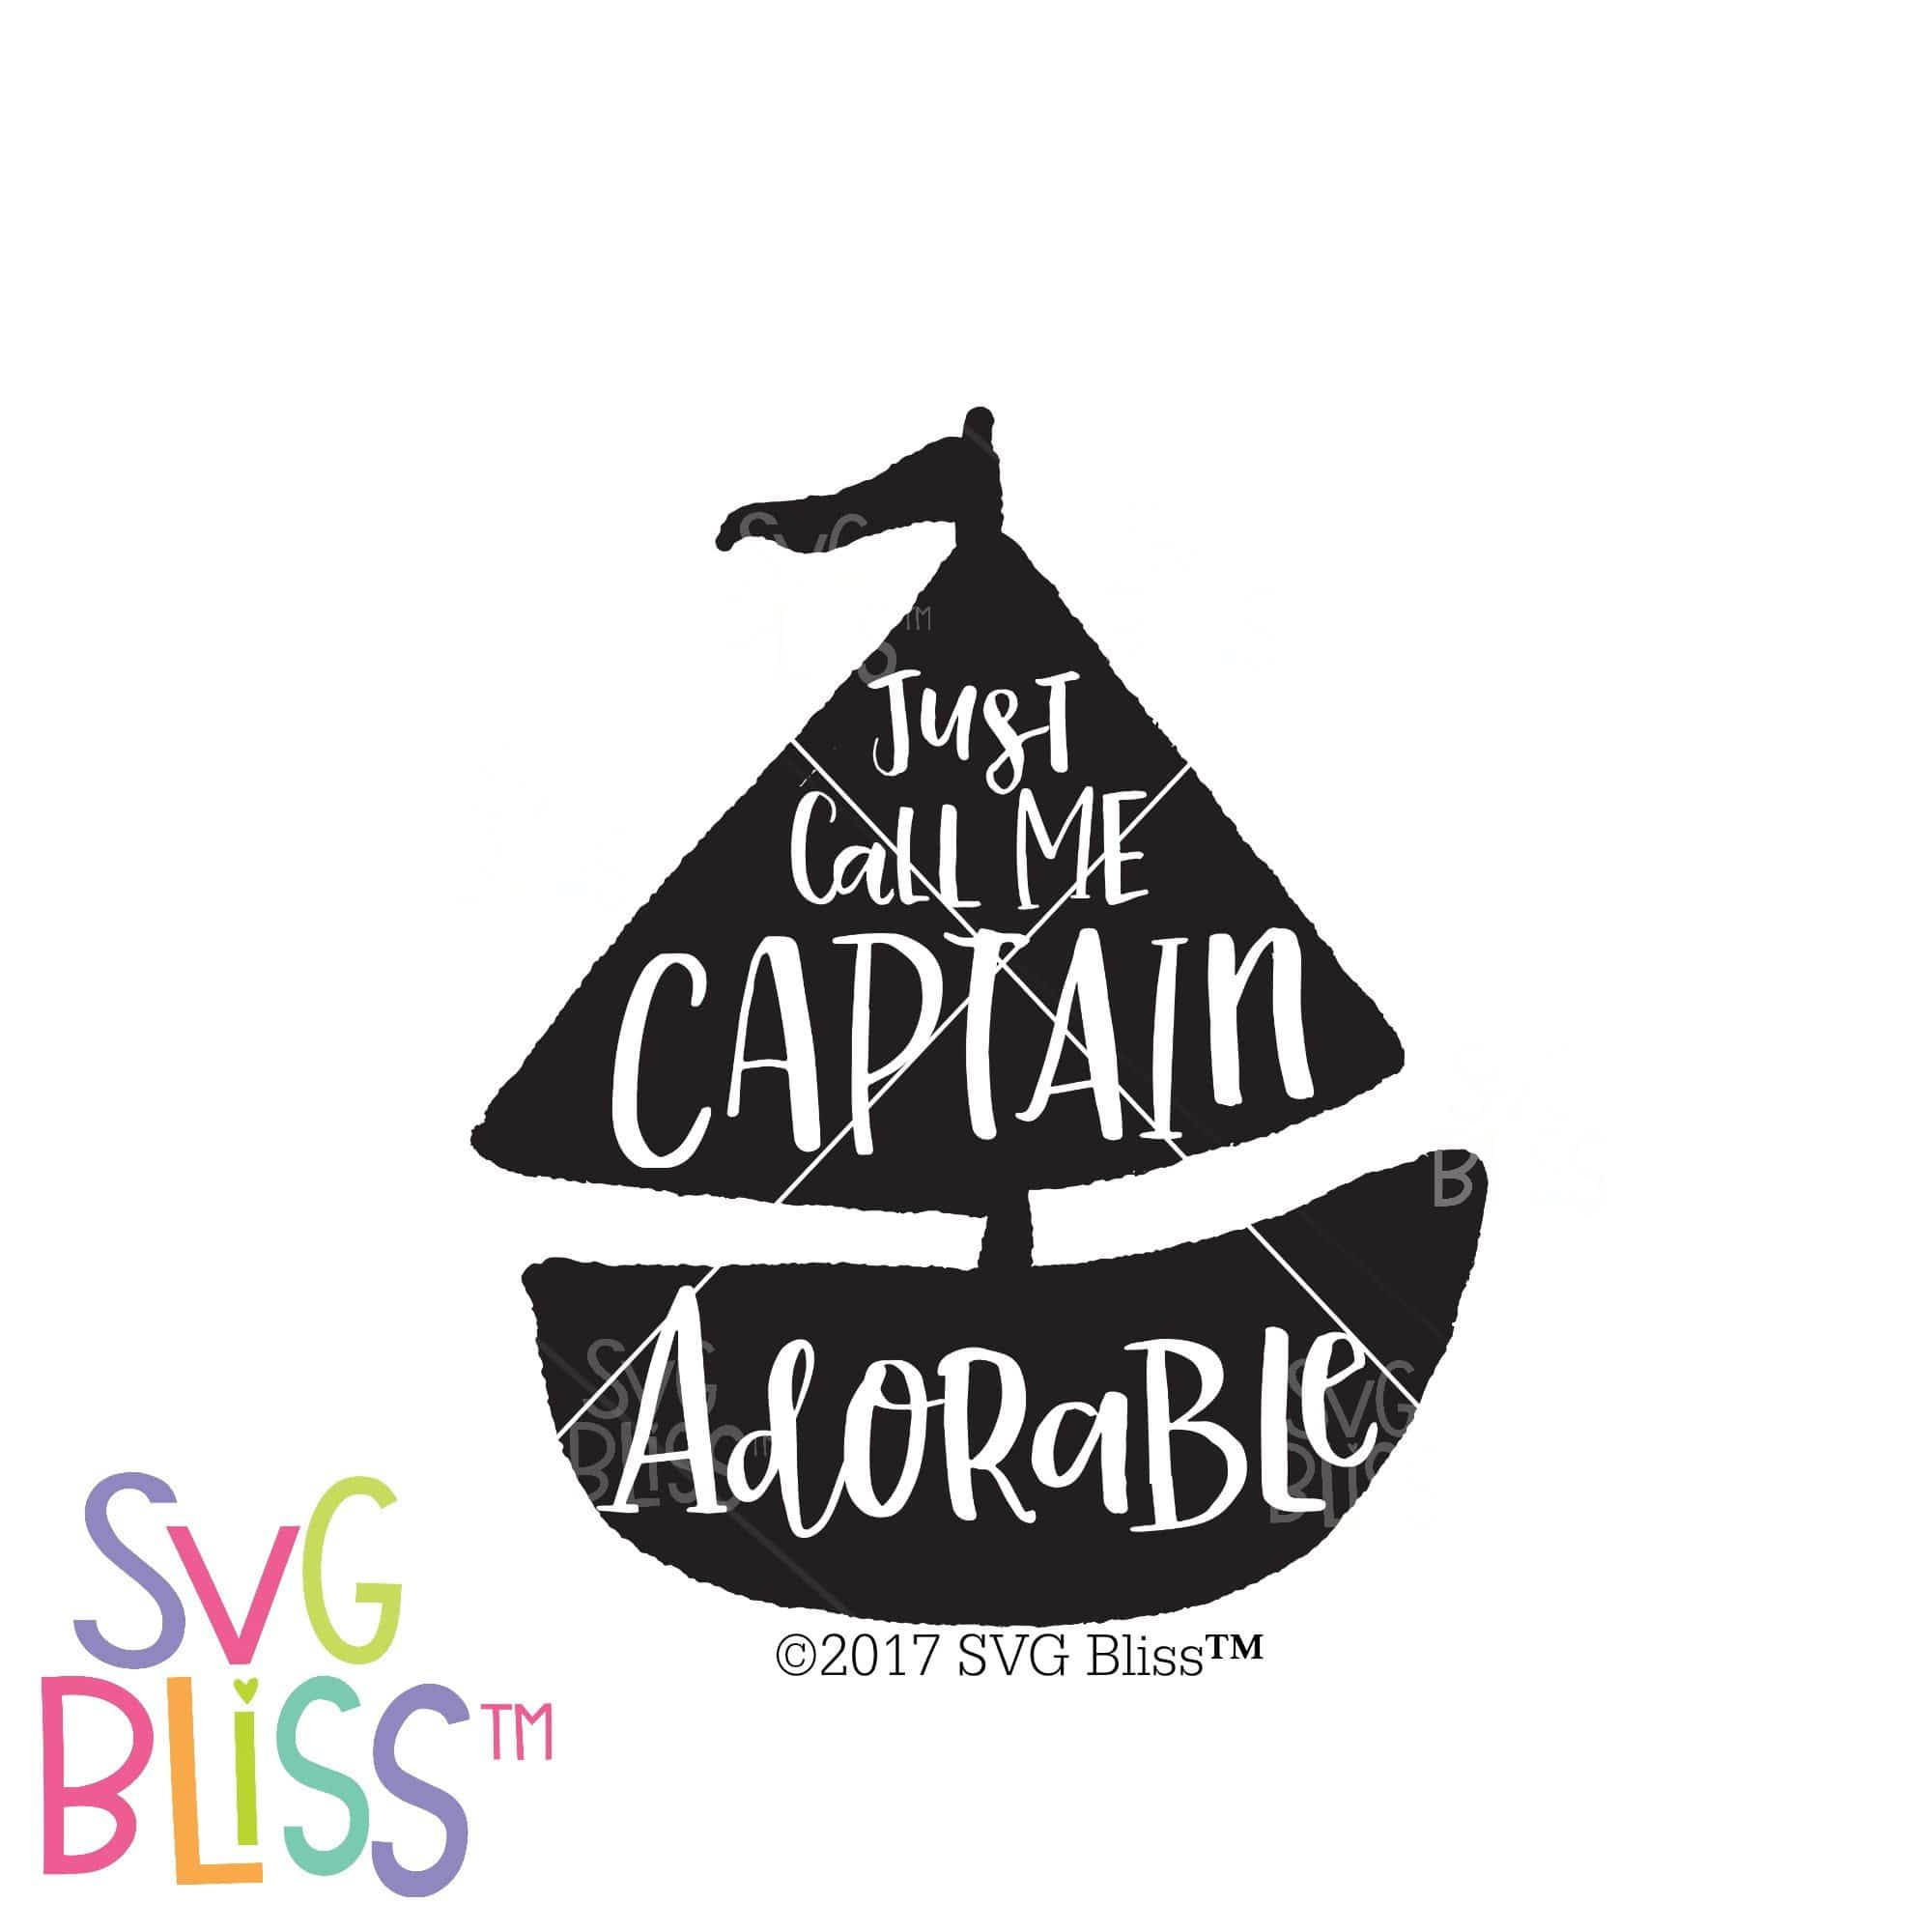 Purchase Just Call Me Captain Adorable | SVG EPS DXF PNG $3.99 ©SVG Bliss™